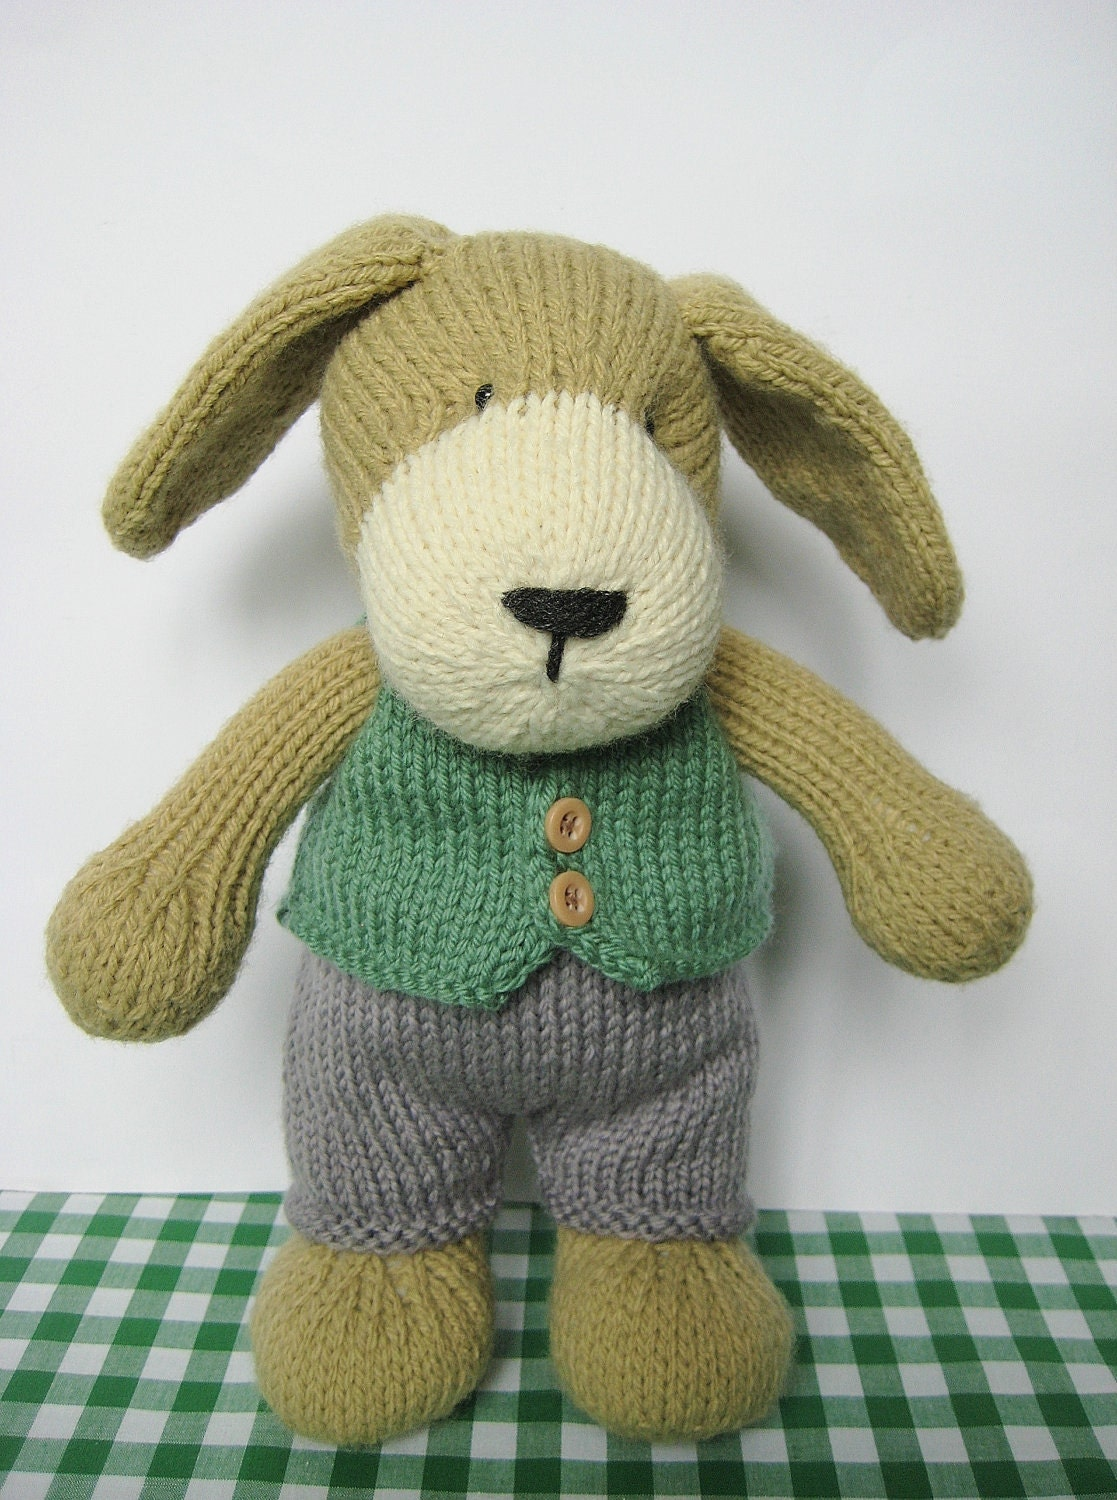 Free Knitting Pattern Toy Puppy : Puppy toy knitting pattern by fluffandfuzz on Etsy